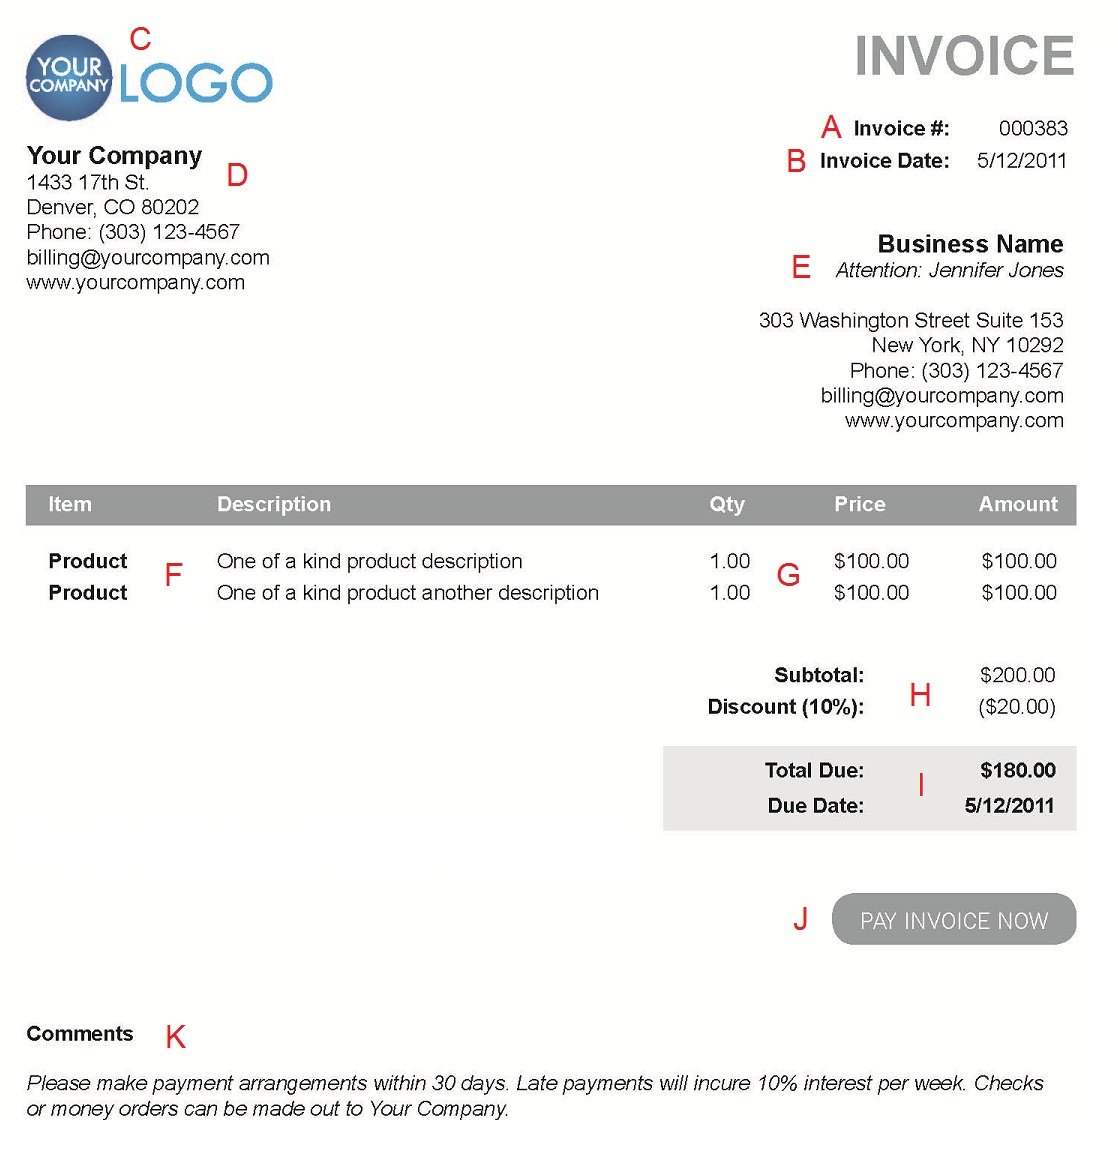 Opposenewapstandardsus  Fascinating The  Different Sections Of An Electronic Payment Invoice With Hot A  With Beauteous Dealer Cost Vs Invoice Also Gmc Invoice In Addition Self Employed Invoice And Time Tracking And Invoicing Software As Well As Examples Of Invoices For Services Rendered Additionally Infiniti Qx Invoice Price From Paysimplecom With Opposenewapstandardsus  Hot The  Different Sections Of An Electronic Payment Invoice With Beauteous A  And Fascinating Dealer Cost Vs Invoice Also Gmc Invoice In Addition Self Employed Invoice From Paysimplecom